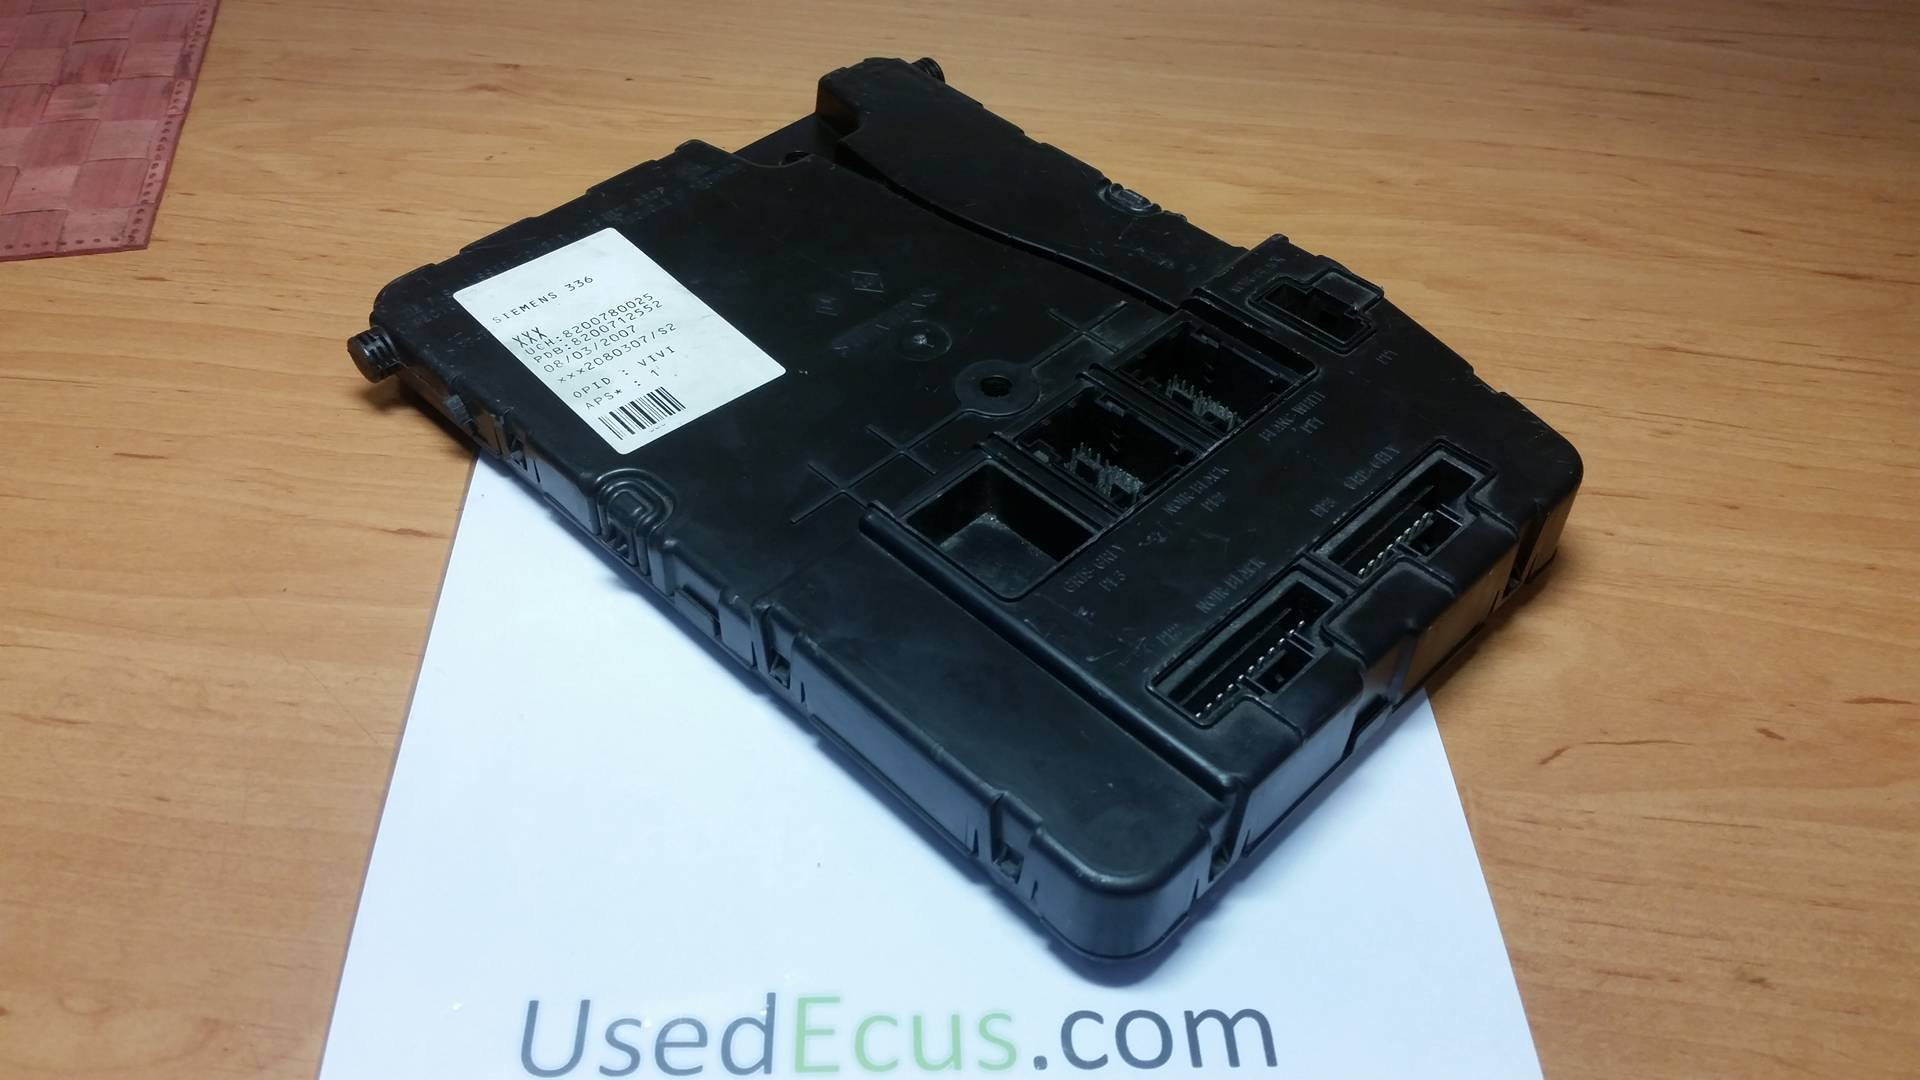 Siemens Fuse Box Wiring Library Renault Scenic For Sale Megane Mk2 Oem Article 8200780025